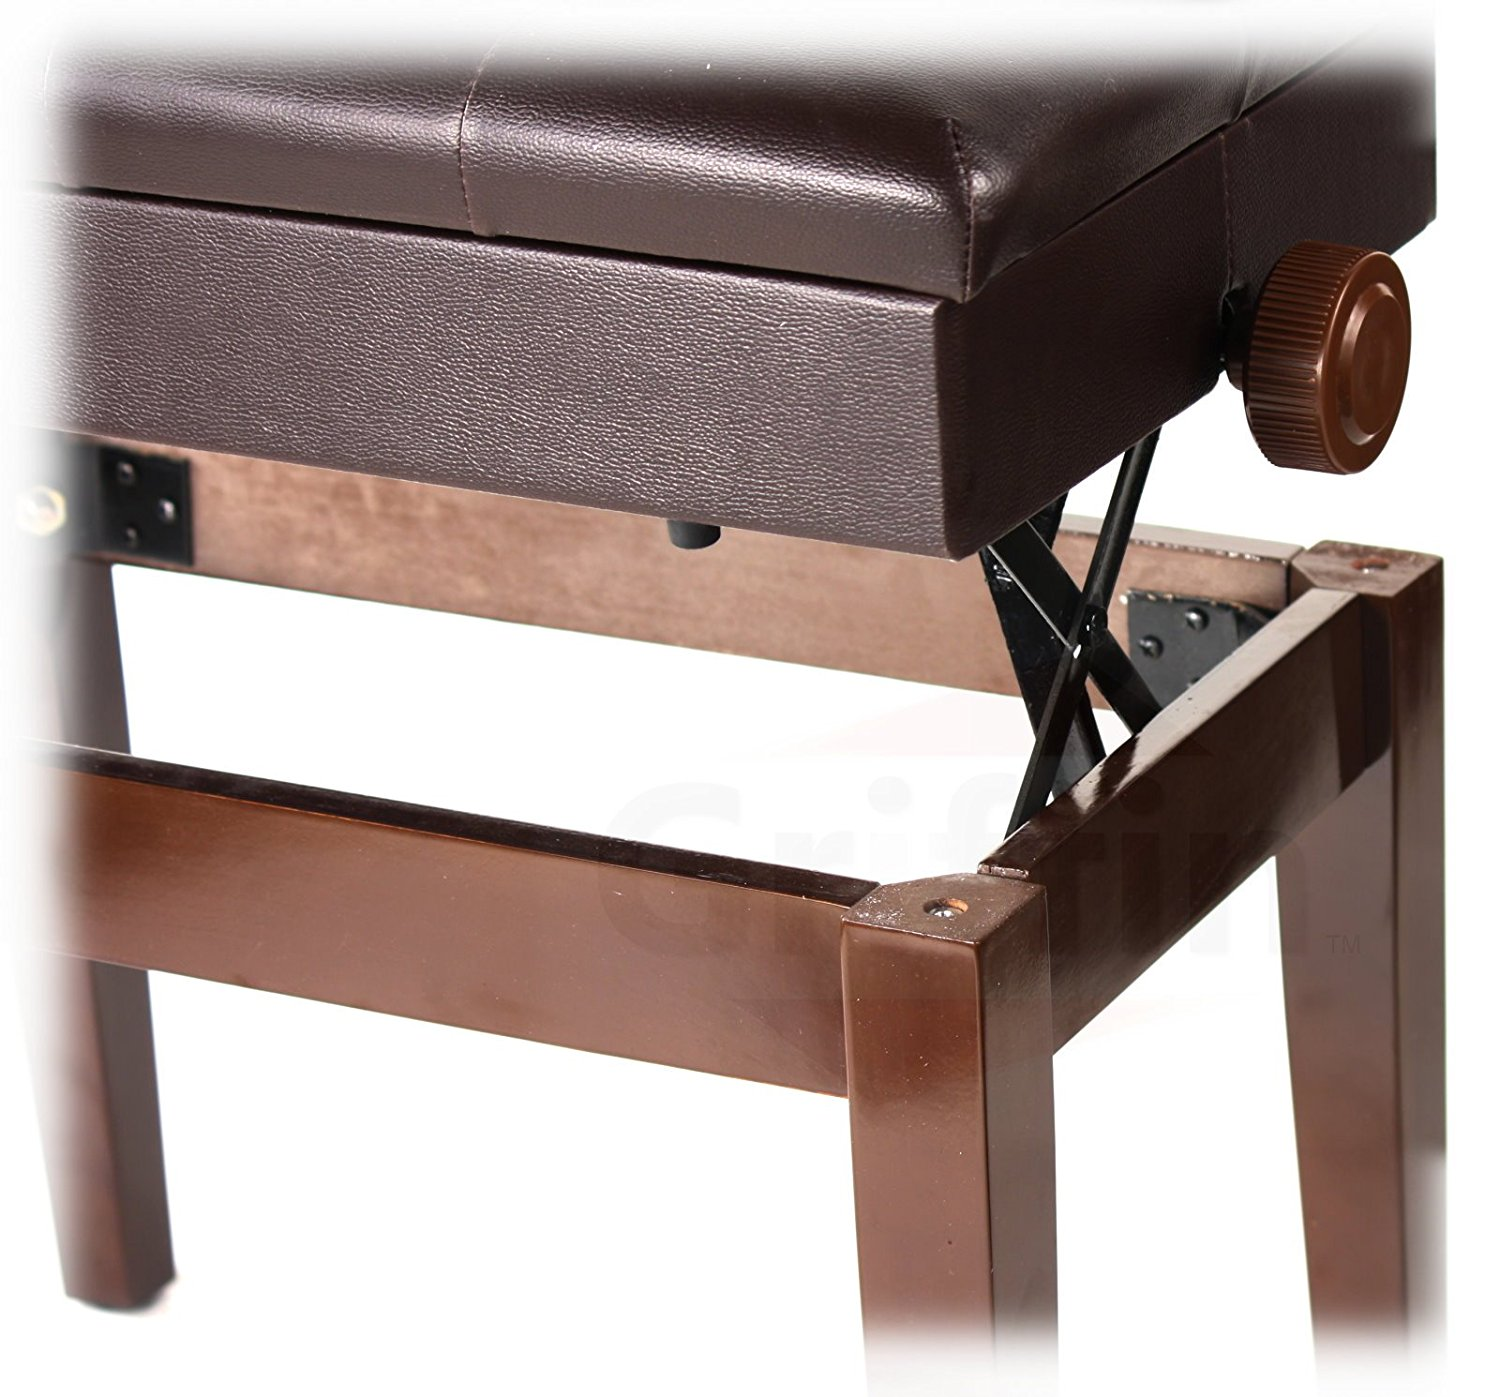 Adjustable Piano Brown Leather Bench By Griffin Vintage Stylish Design Heavy Duty Ergonomic